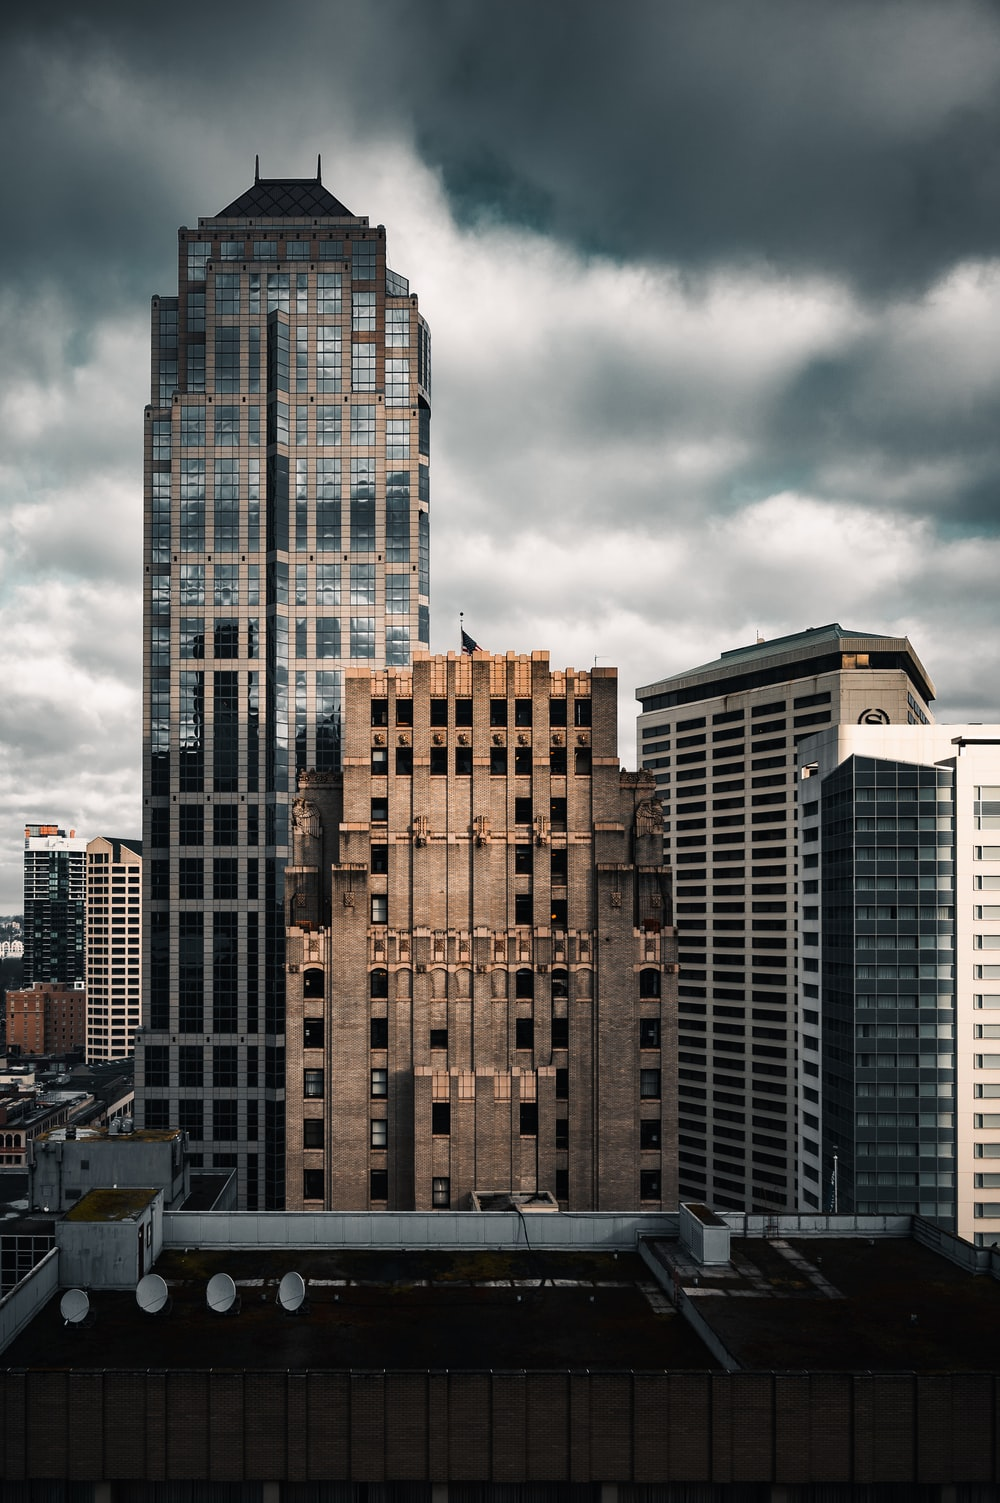 brown and black concrete building under gray clouds during daytime